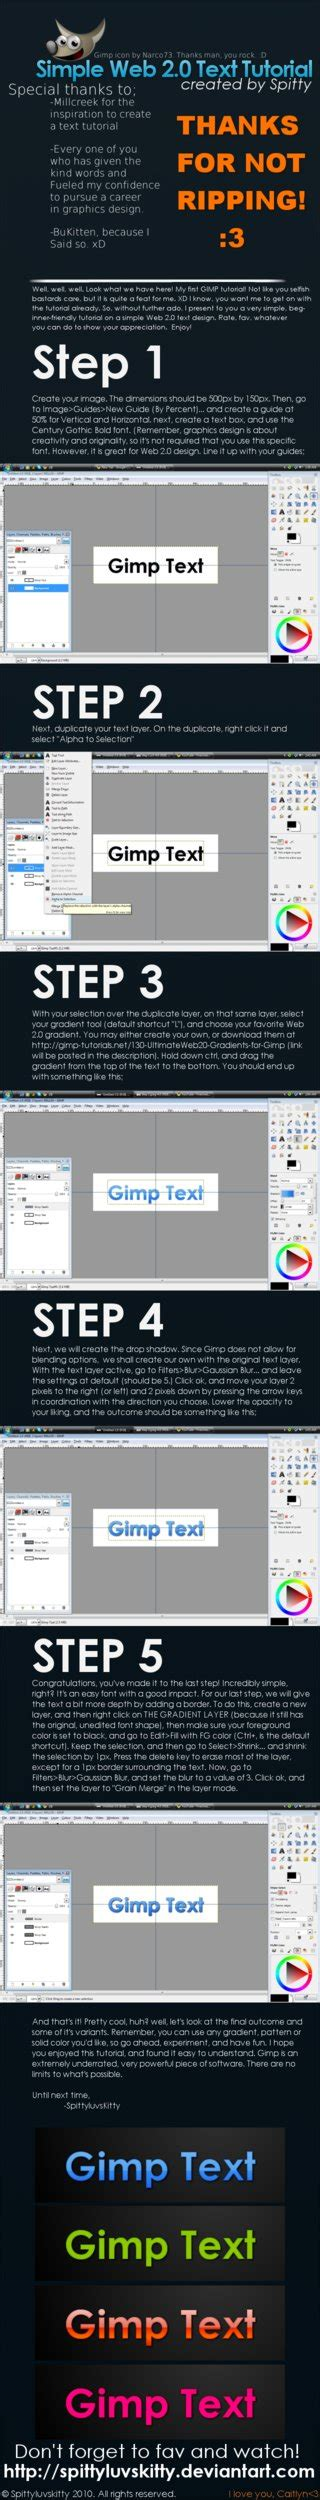 website gimp tutorial gimp web 2 0 text tutorial by spittyluvskitty on deviantart